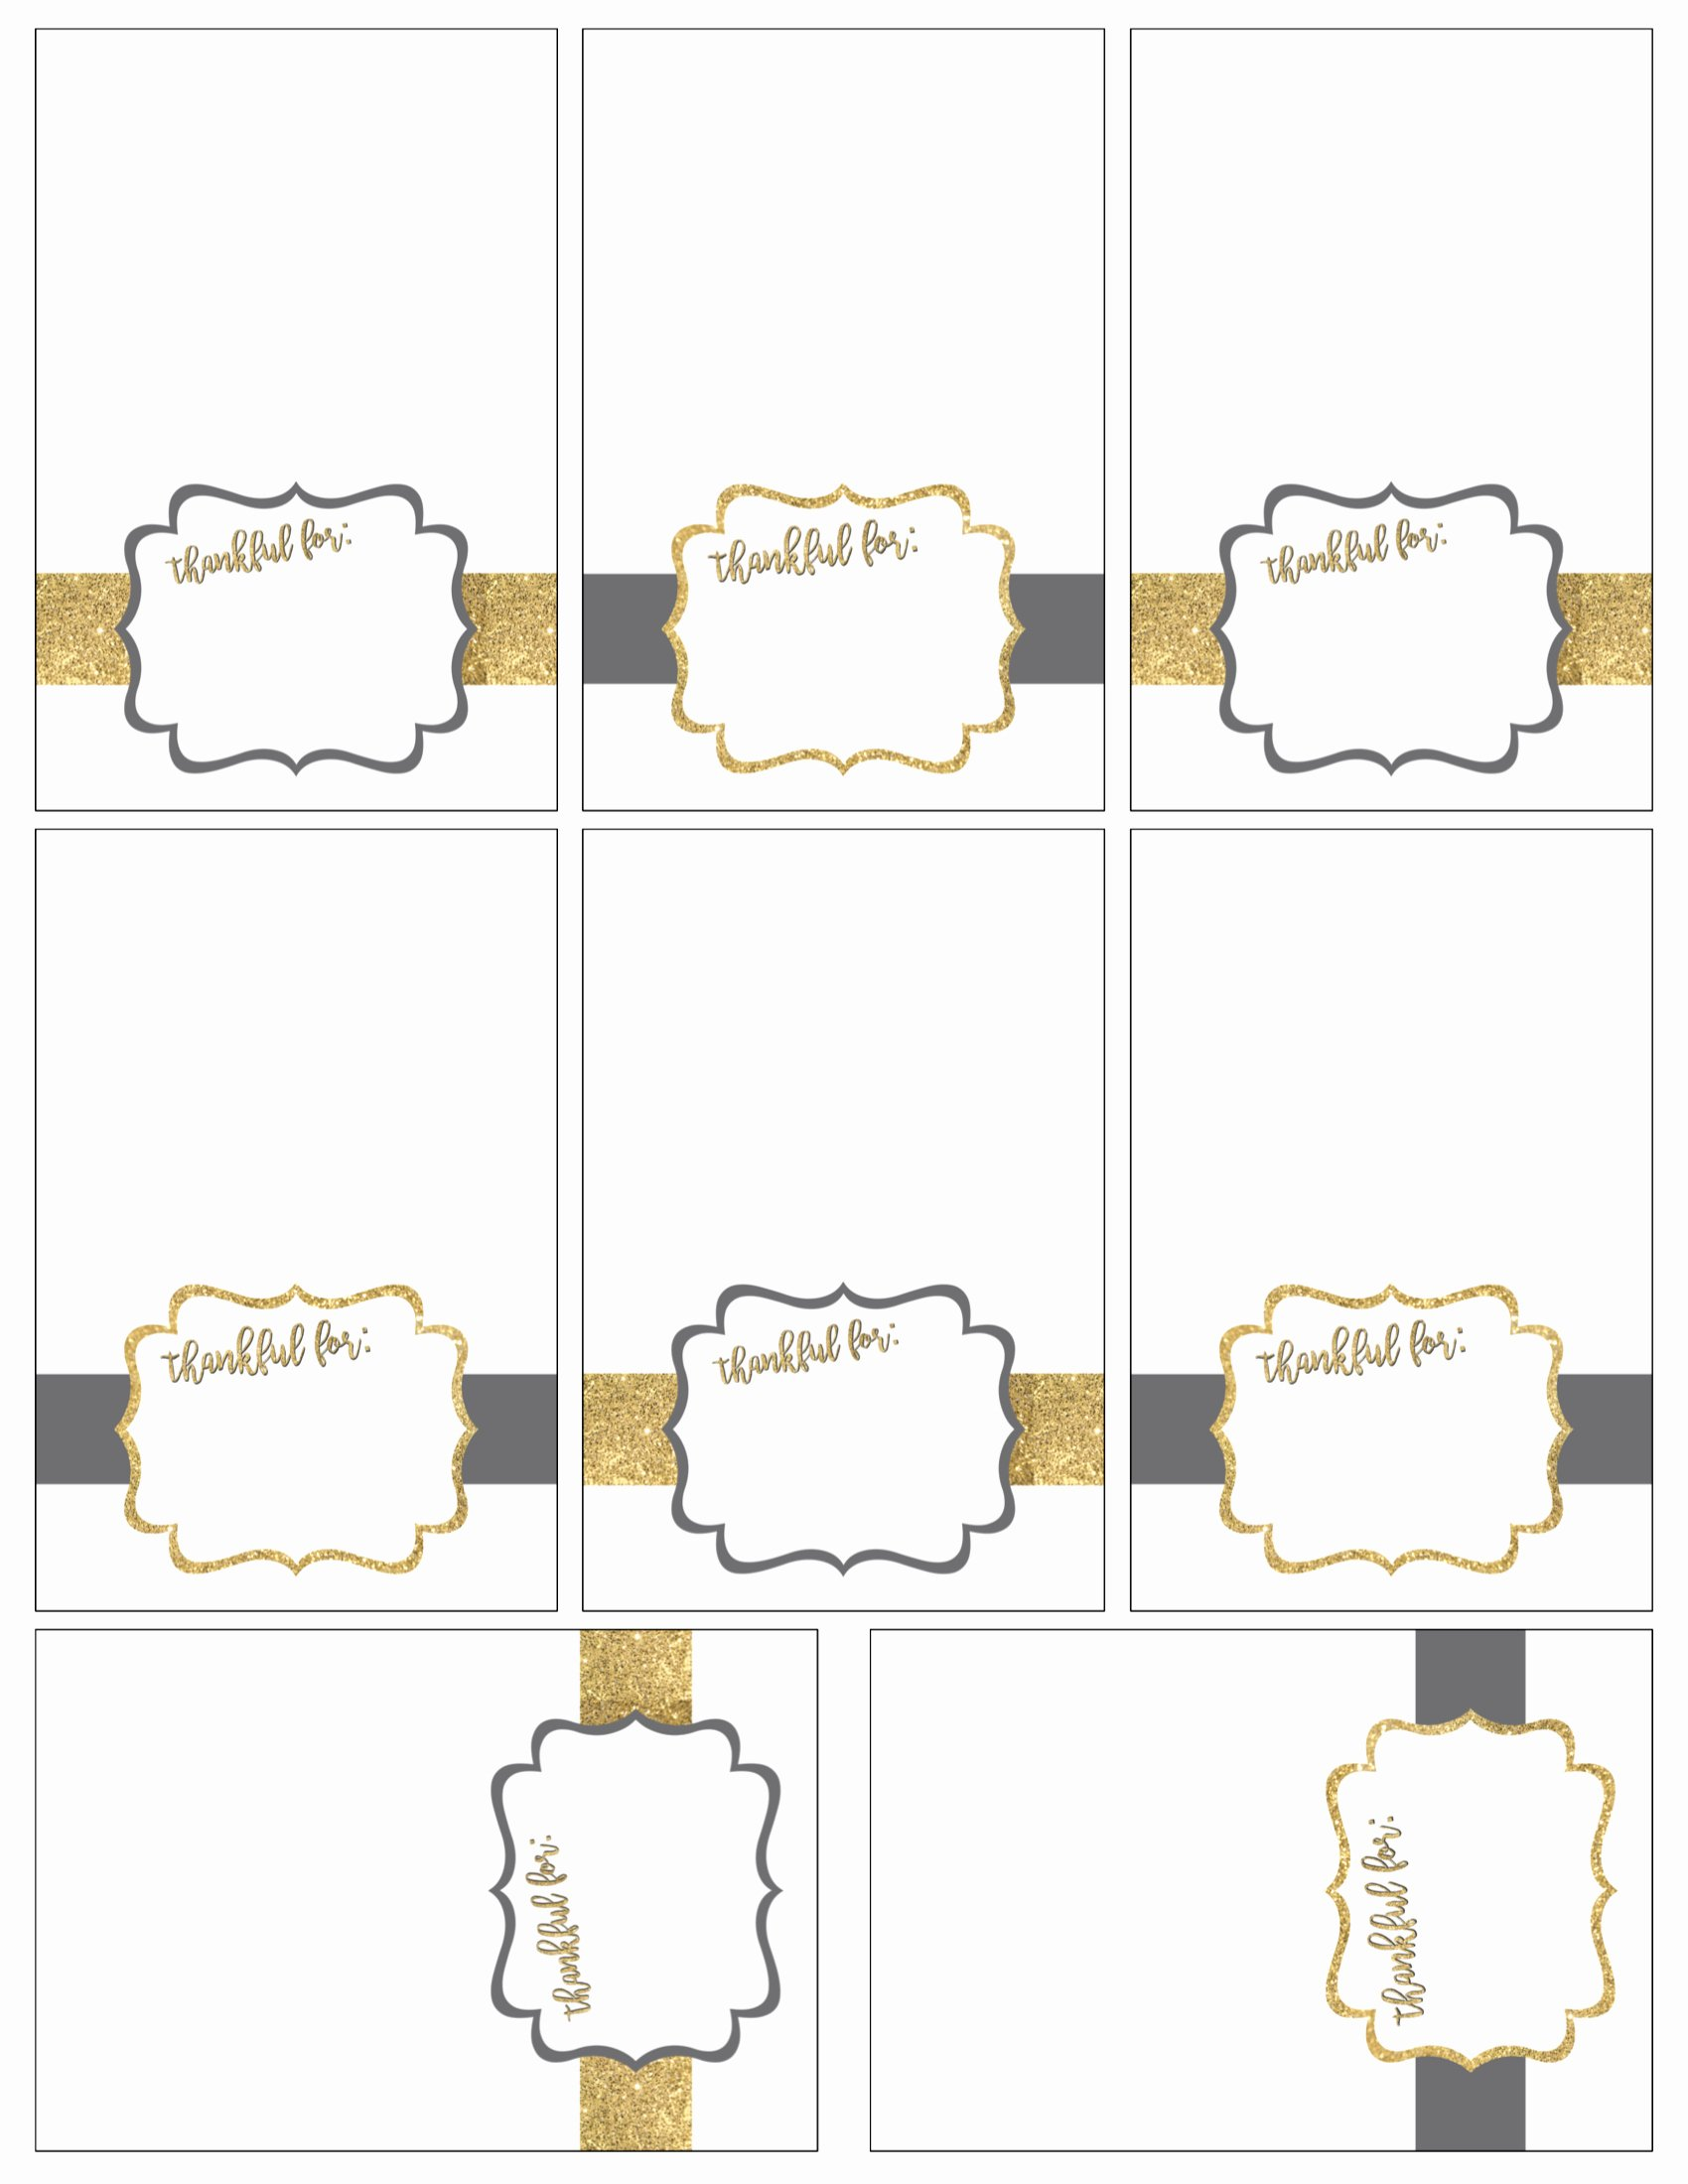 Free Printable Place Cards Awesome Free Printable Thanksgiving Place Cards Paper Trail Design